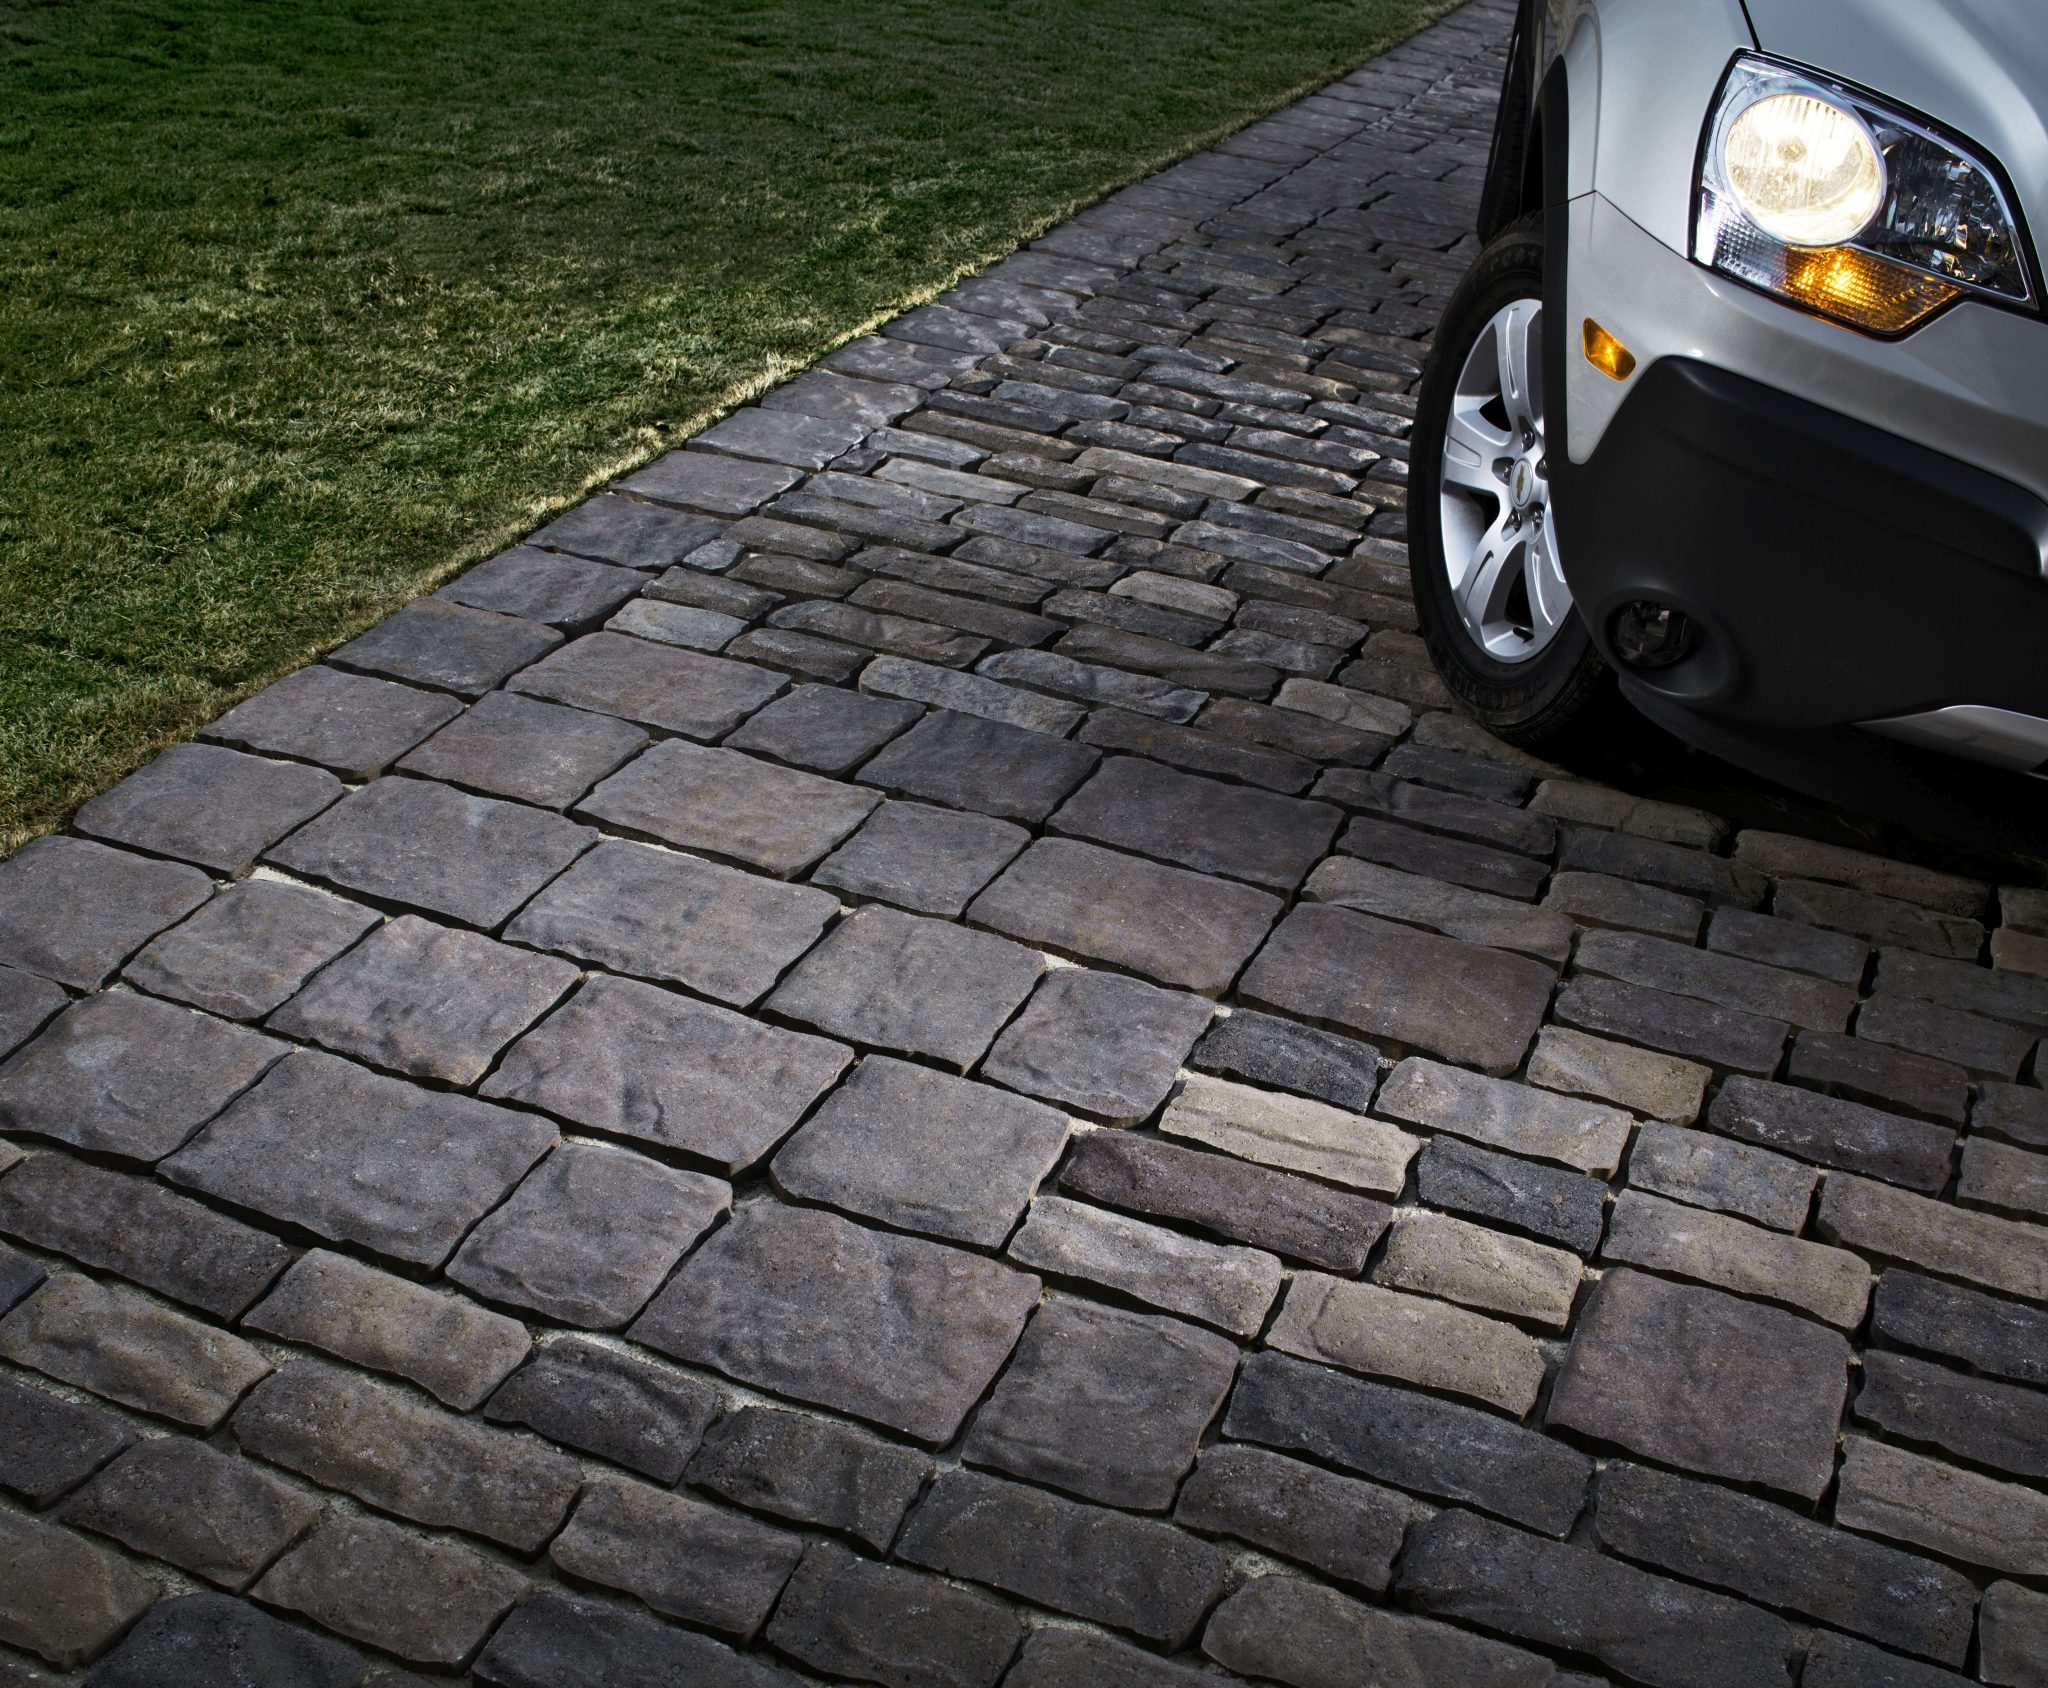 How to Remove Oil Stains from Concrete Pavers (Step-by-Step